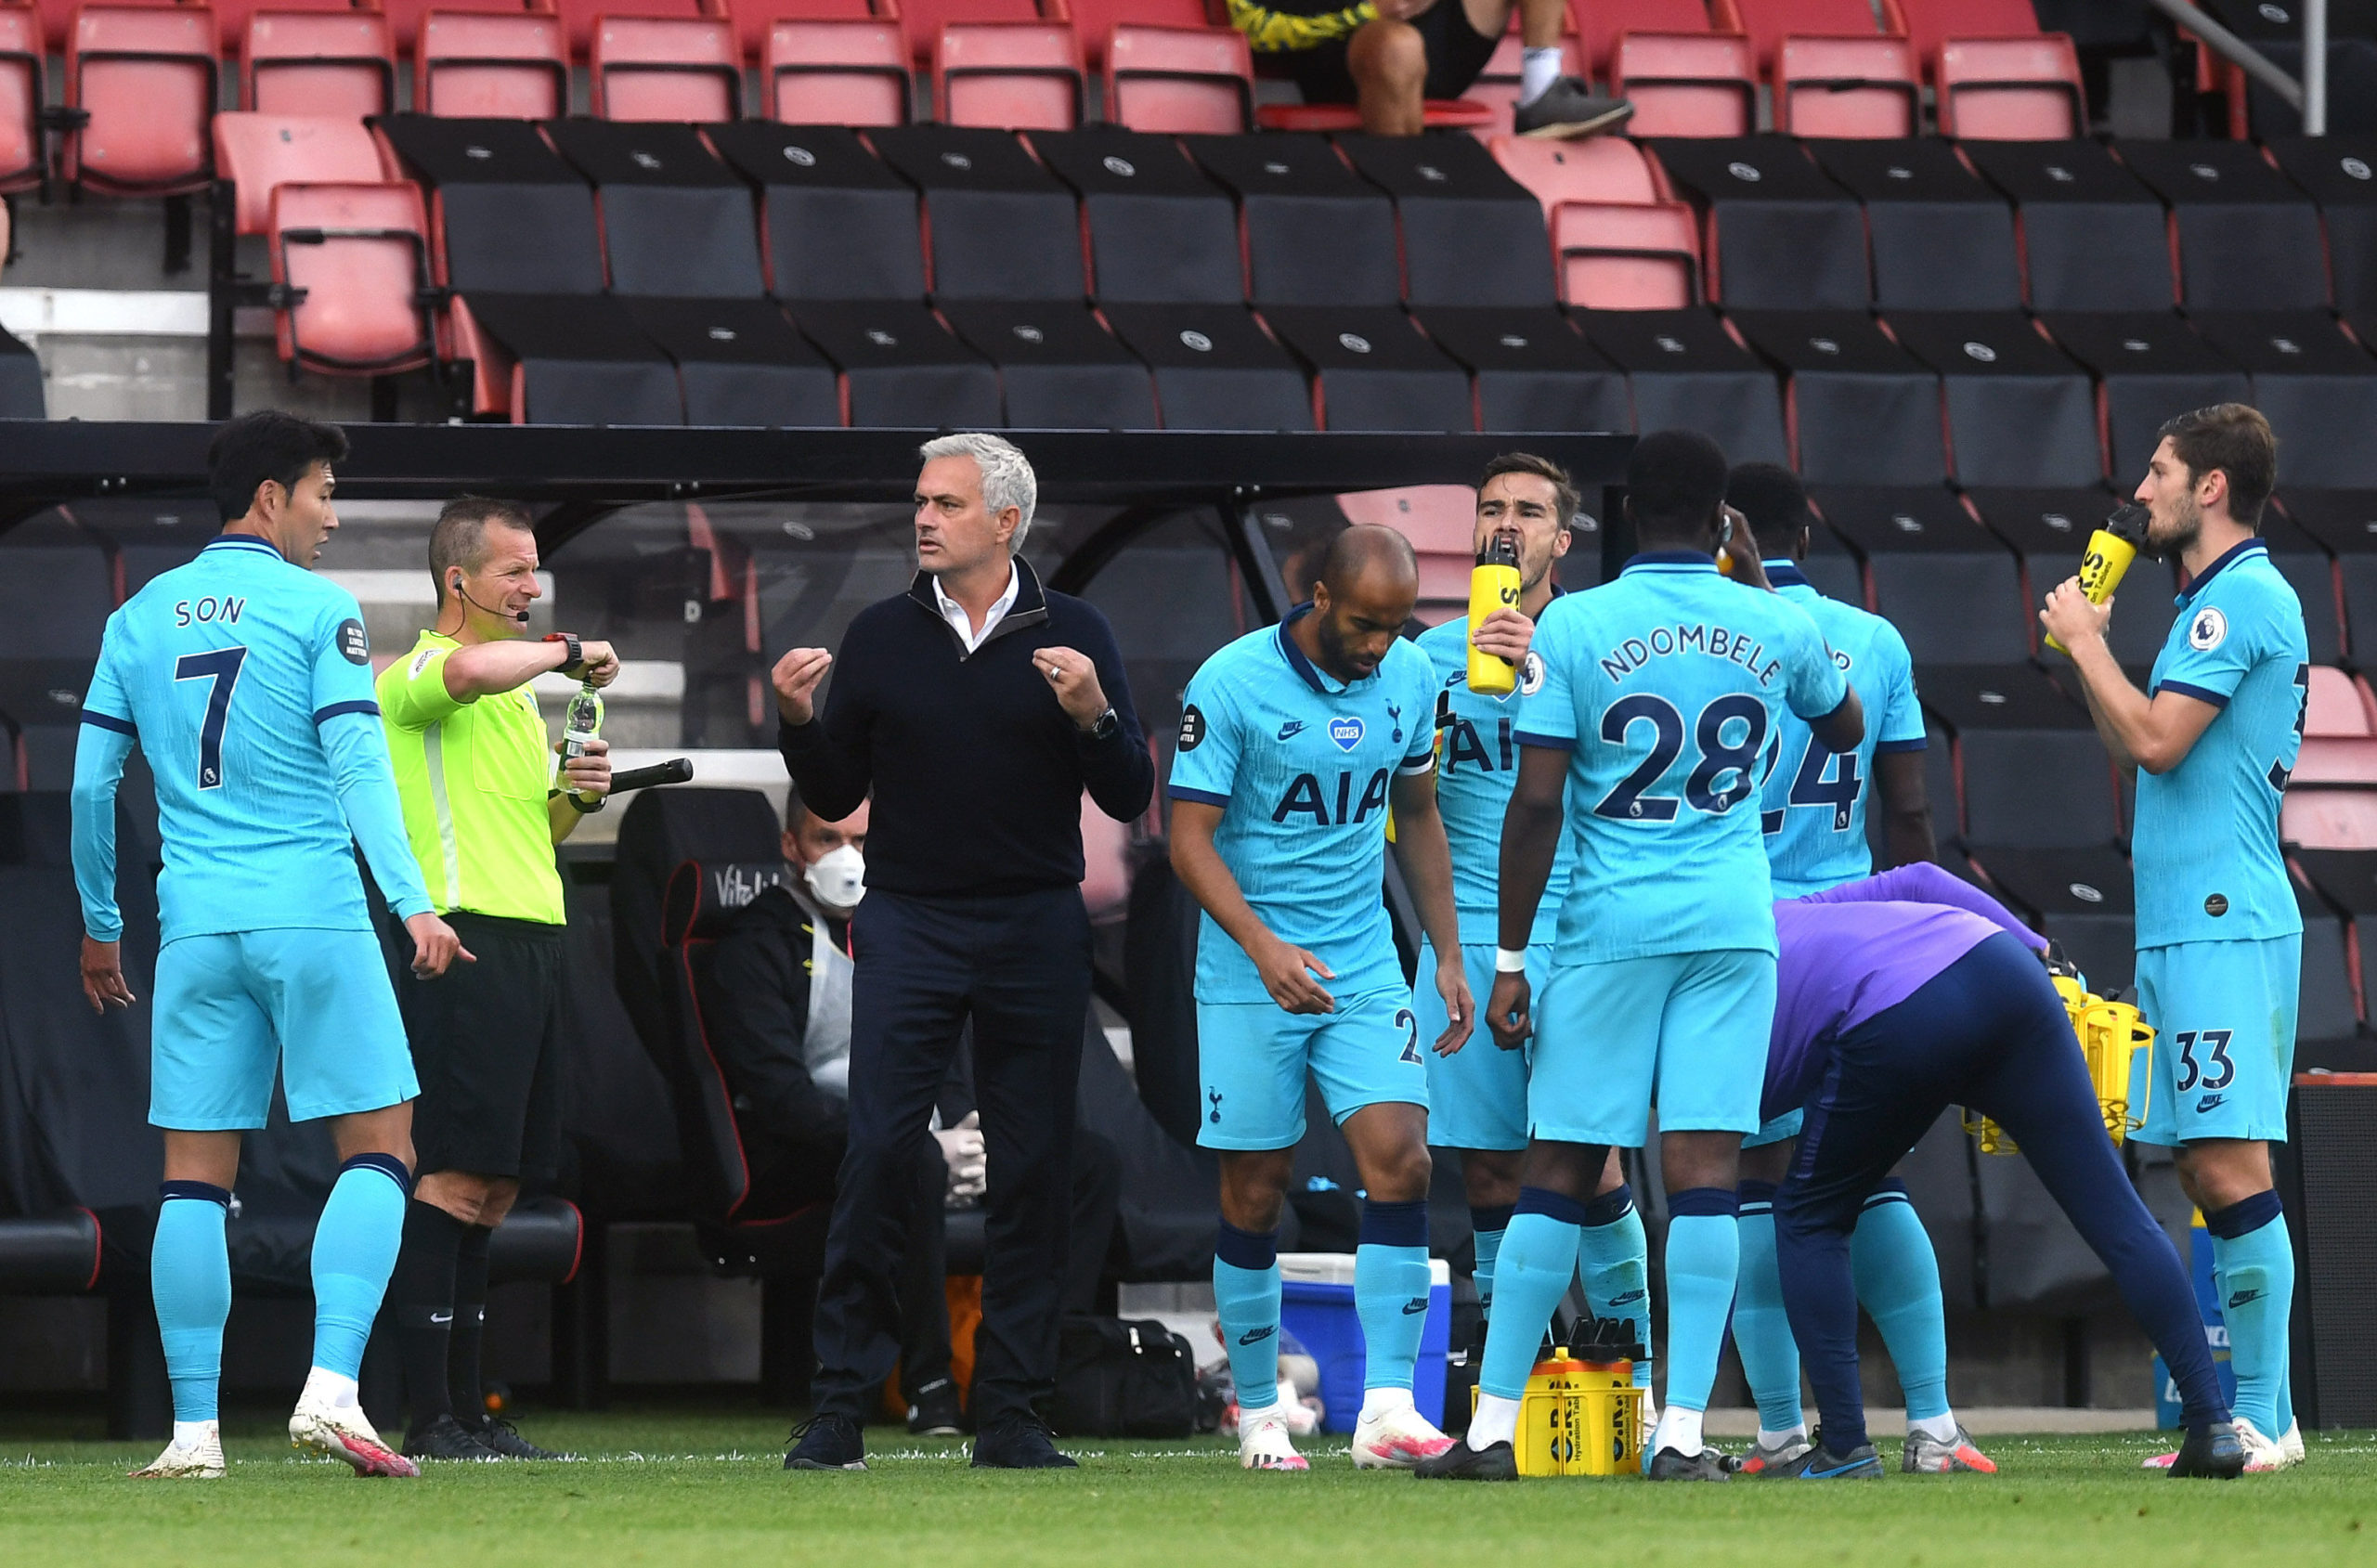 Tottenham Hotspur manager Jose Mourinho (left) gestures to players during a water break during the Premier League match at Vitality Stadium, Bournemouth.